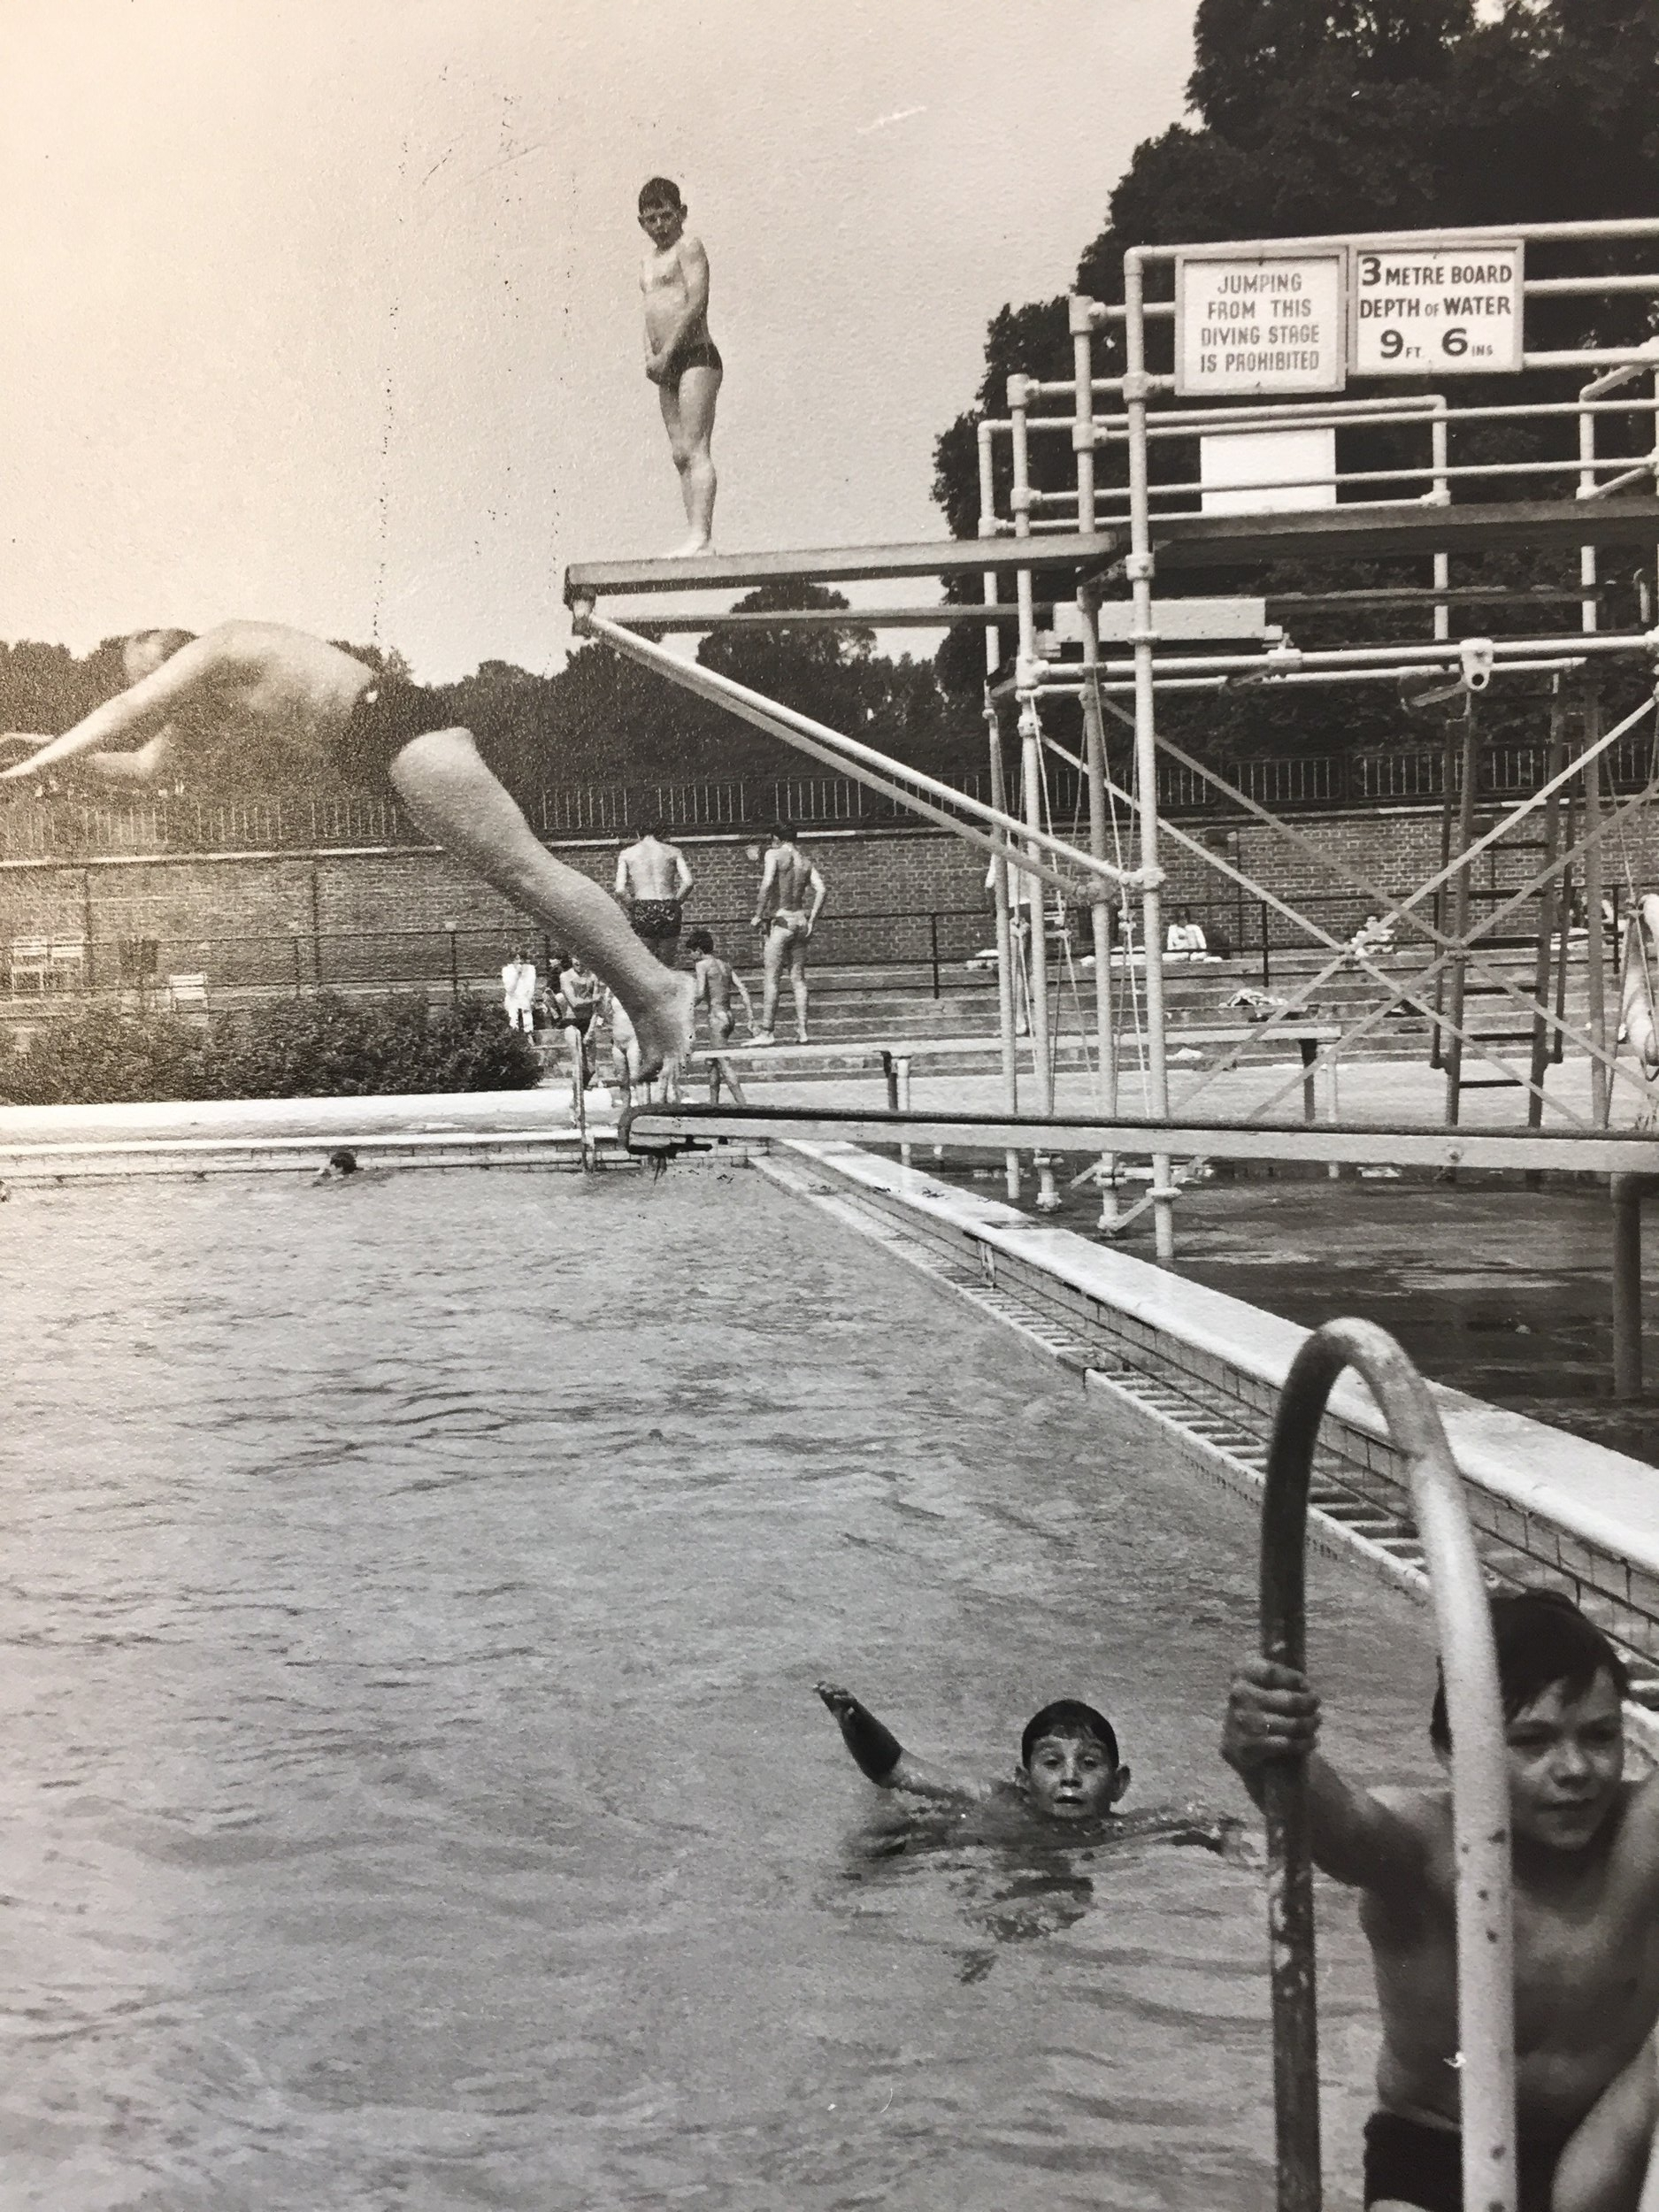 The main diving boards, in 1965